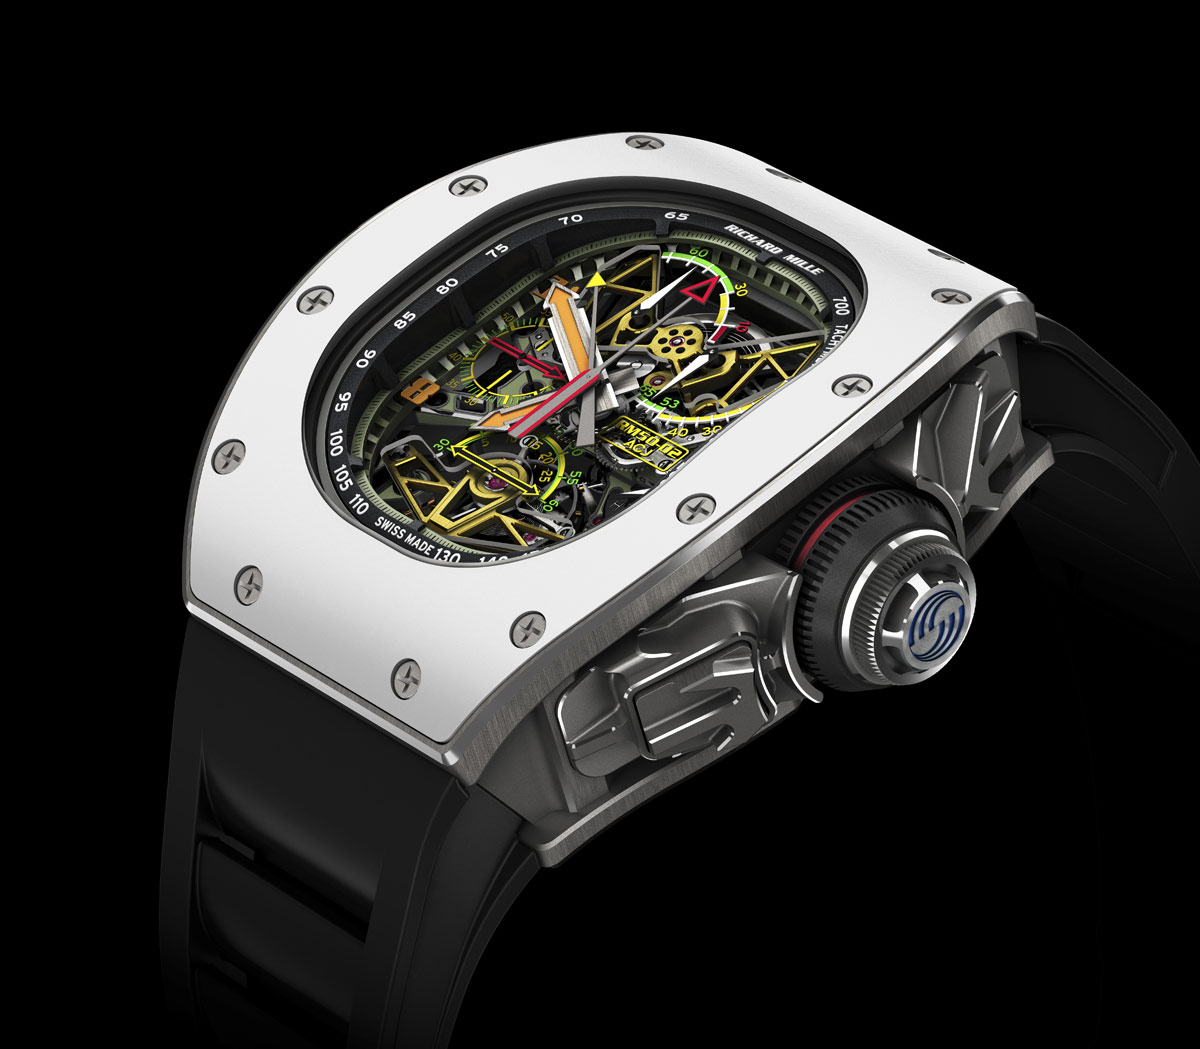 sihh 2016 richard mille rm 50 02 tourbillon split. Black Bedroom Furniture Sets. Home Design Ideas